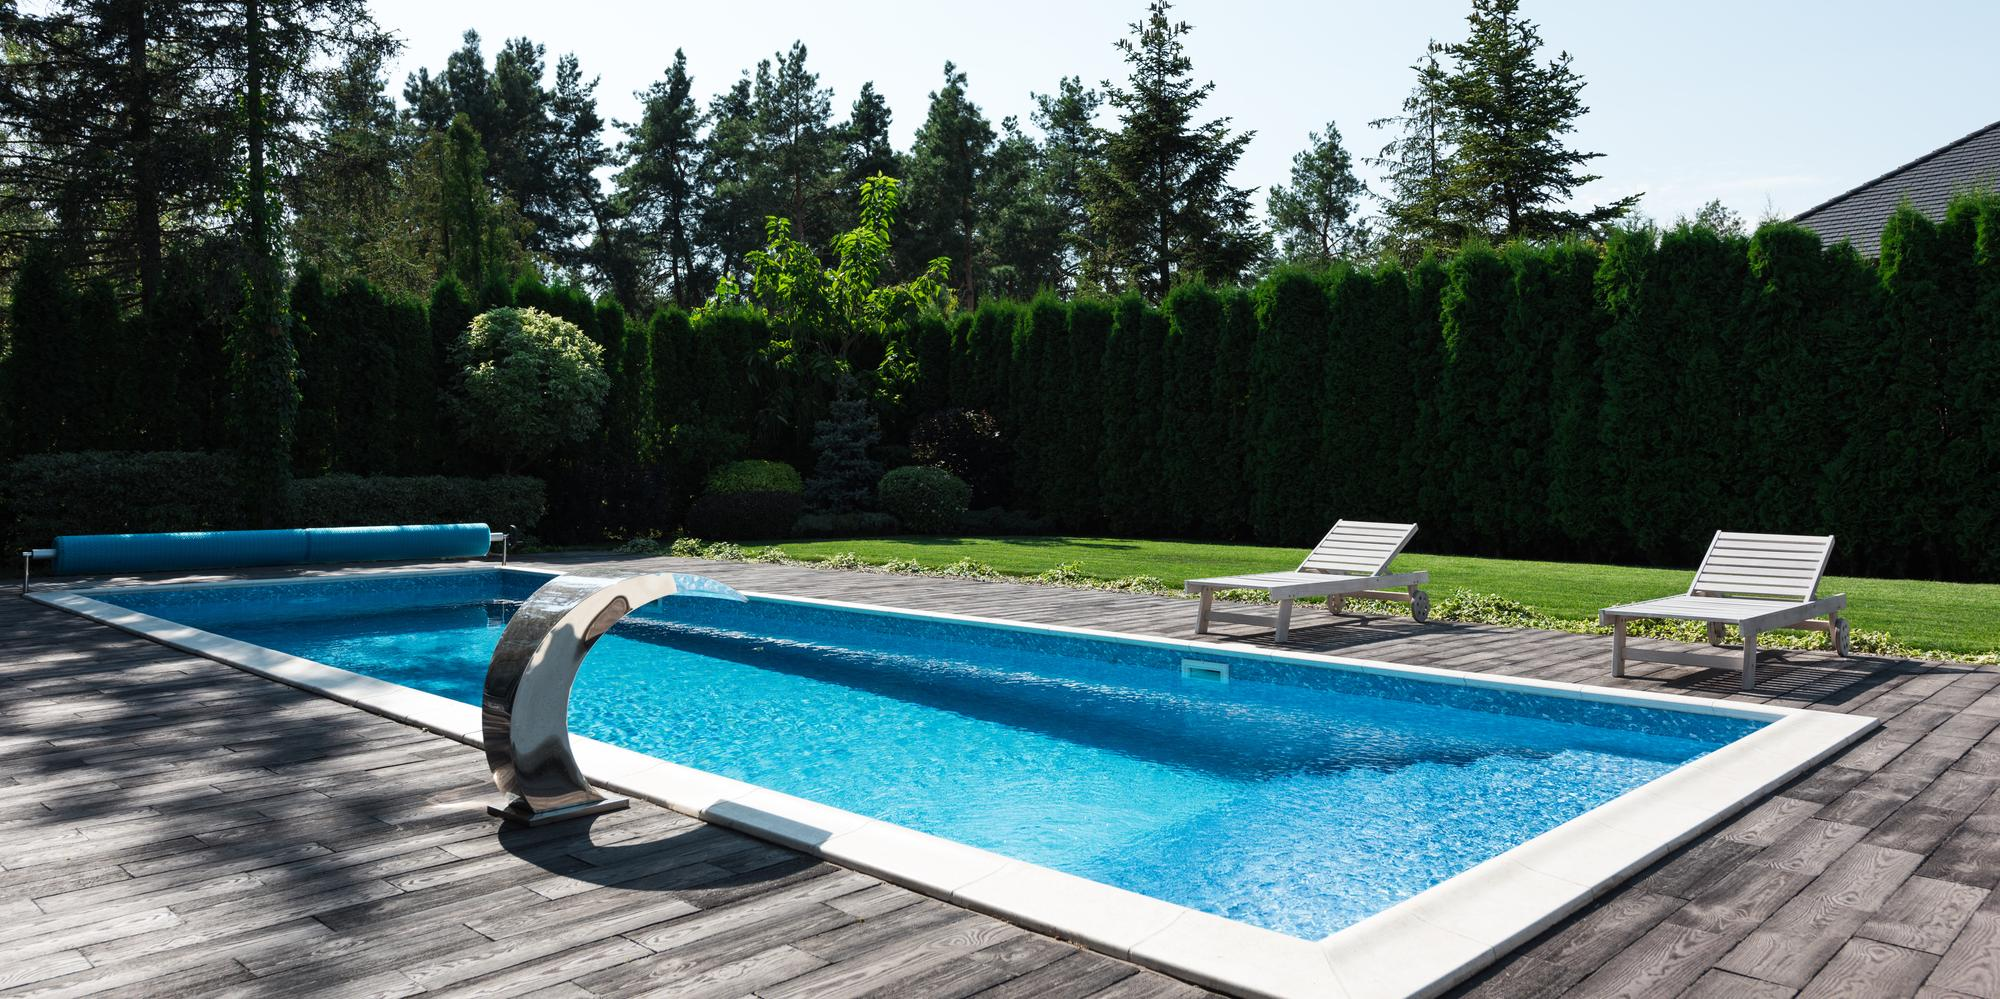 Helpful tips to prepare your pool for plenty of summer fun